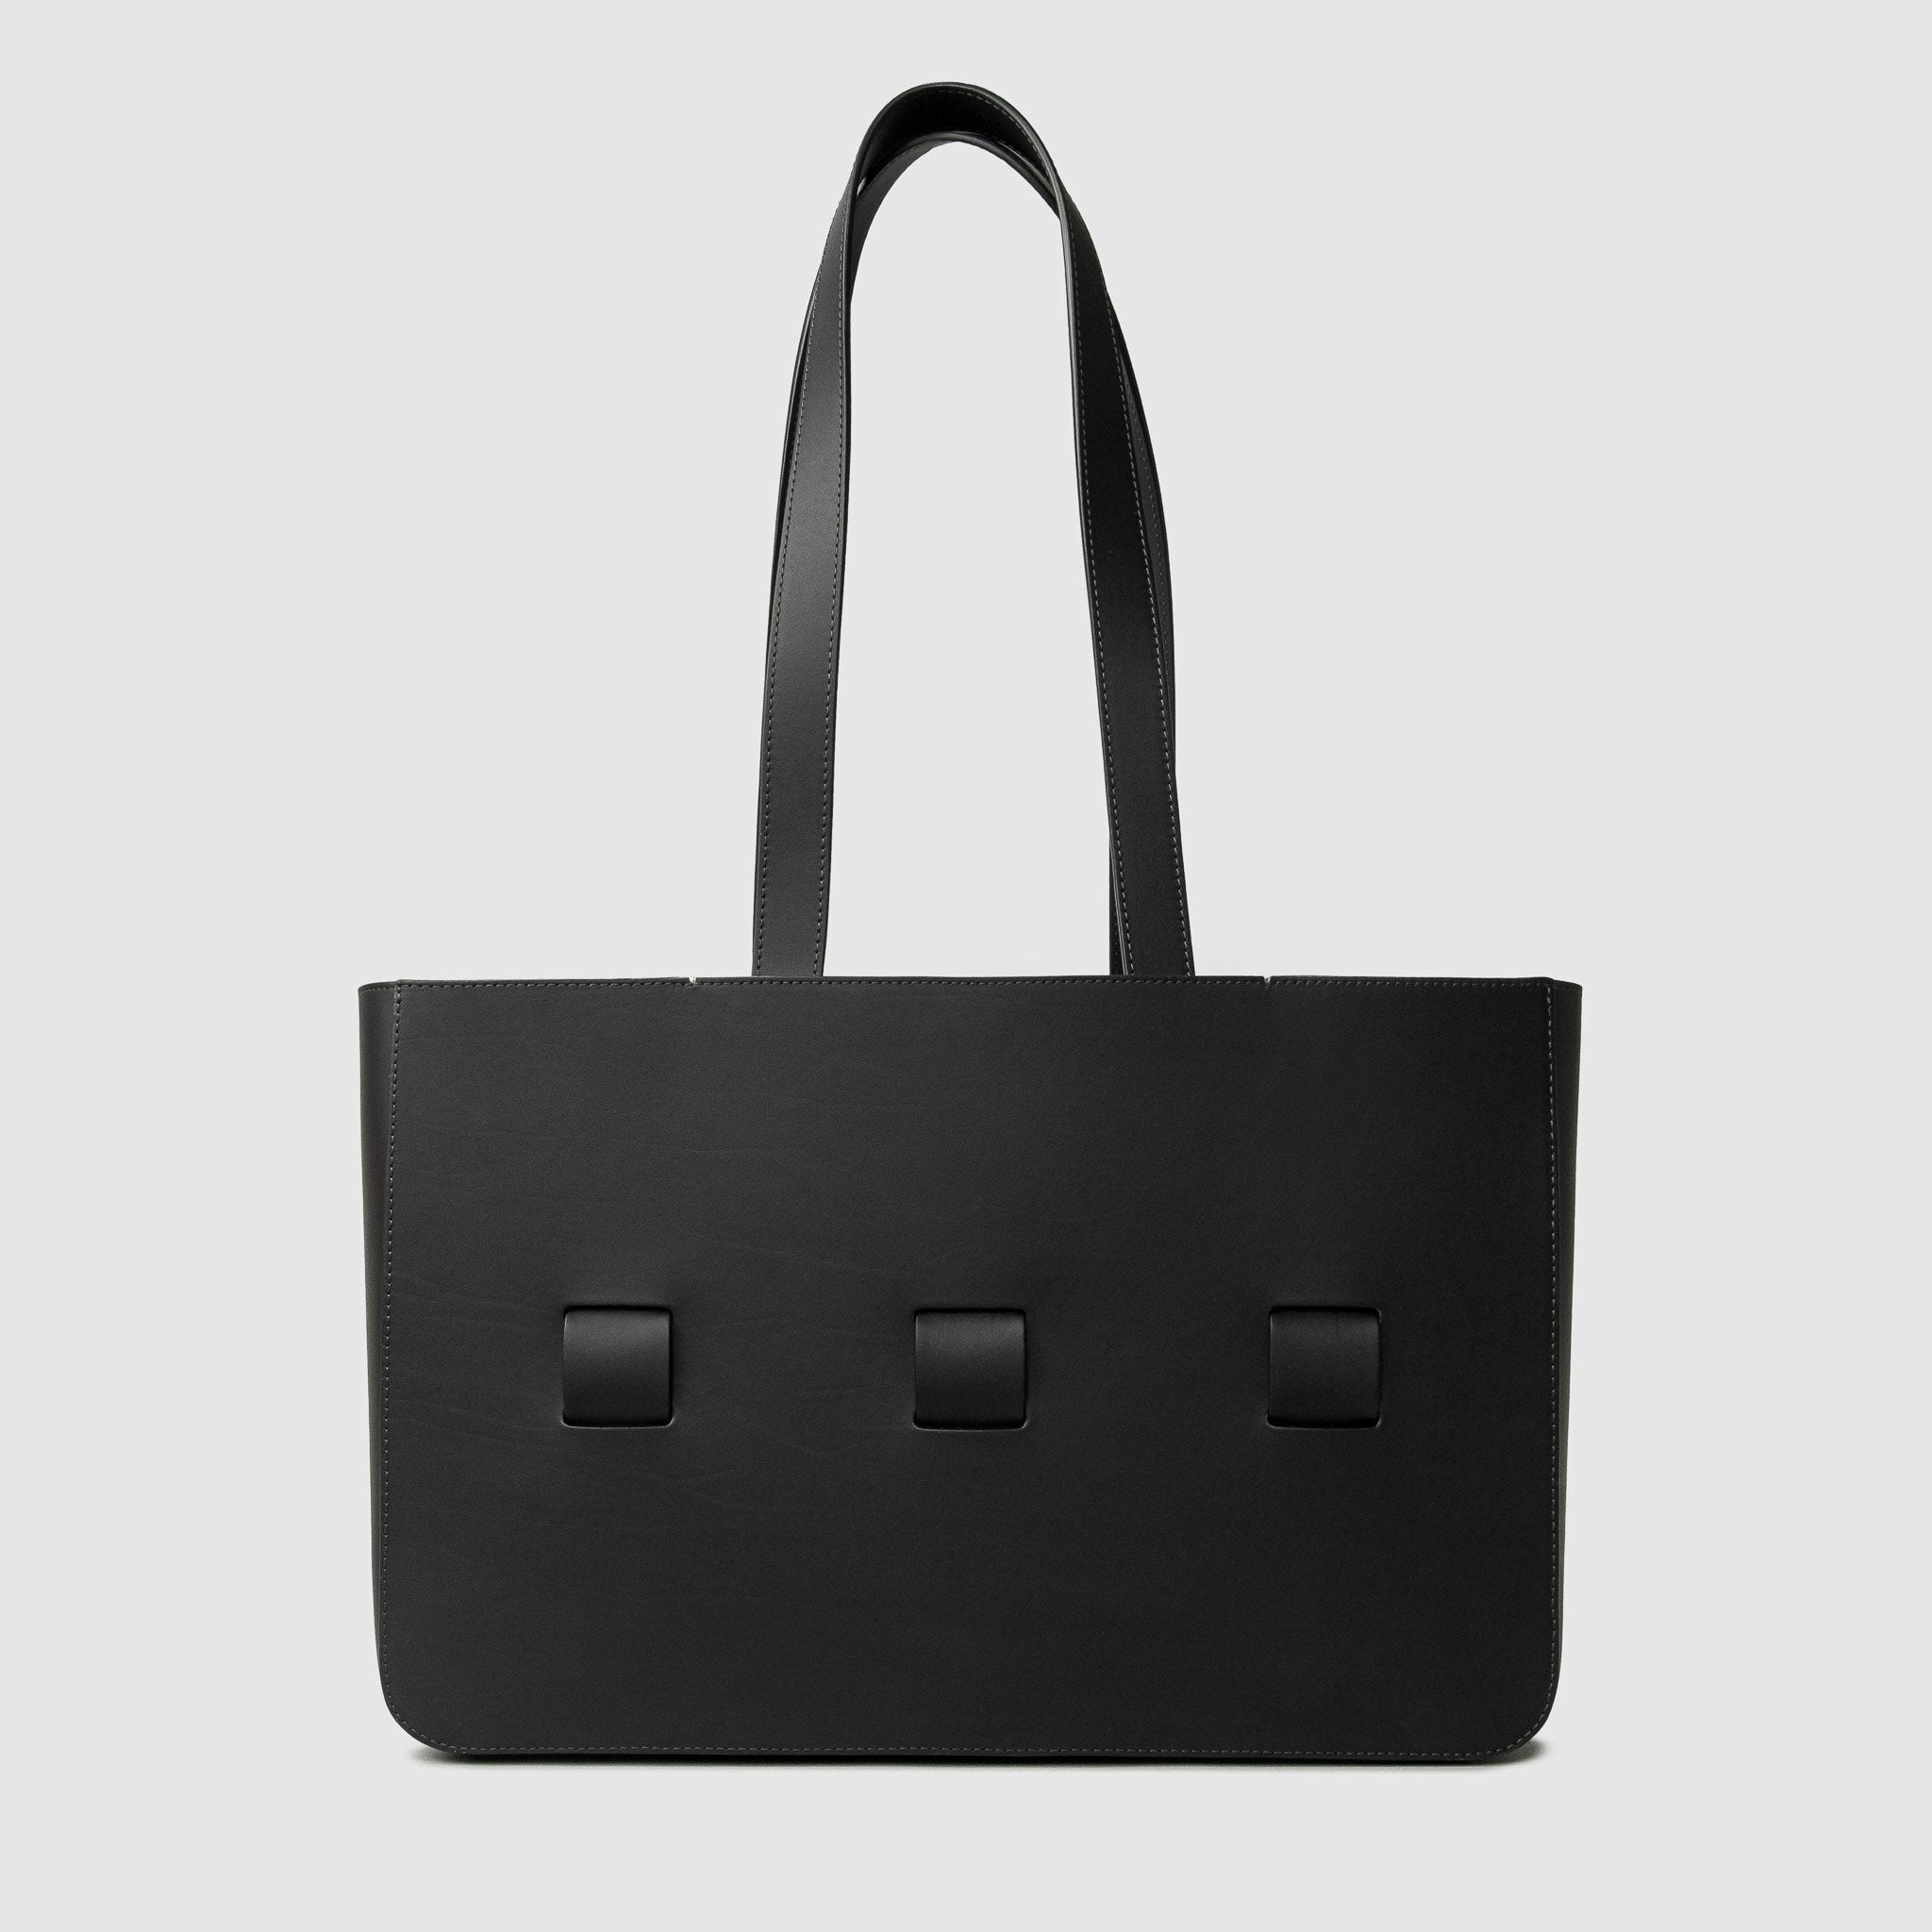 anson calder french calfskin leather tote _black